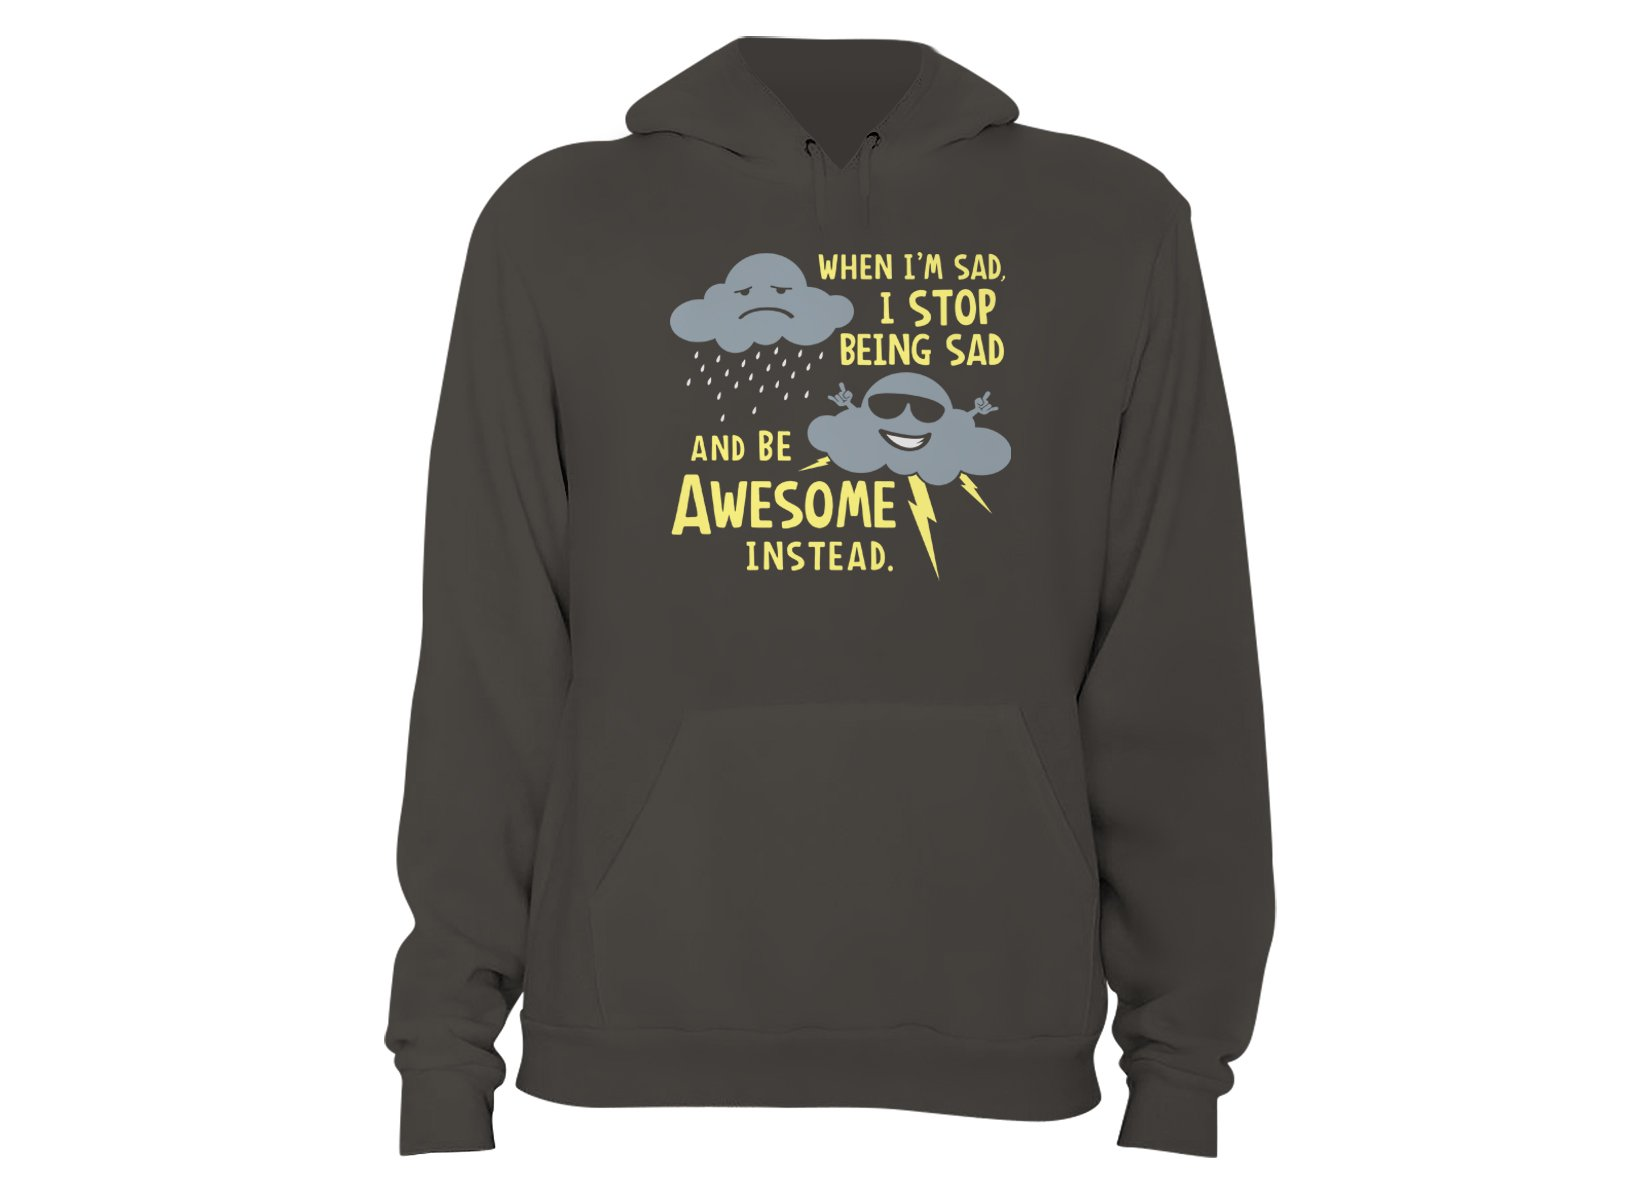 When I'm Sad, I Stop Being Sad And Be Awesome Instead on Hoodie